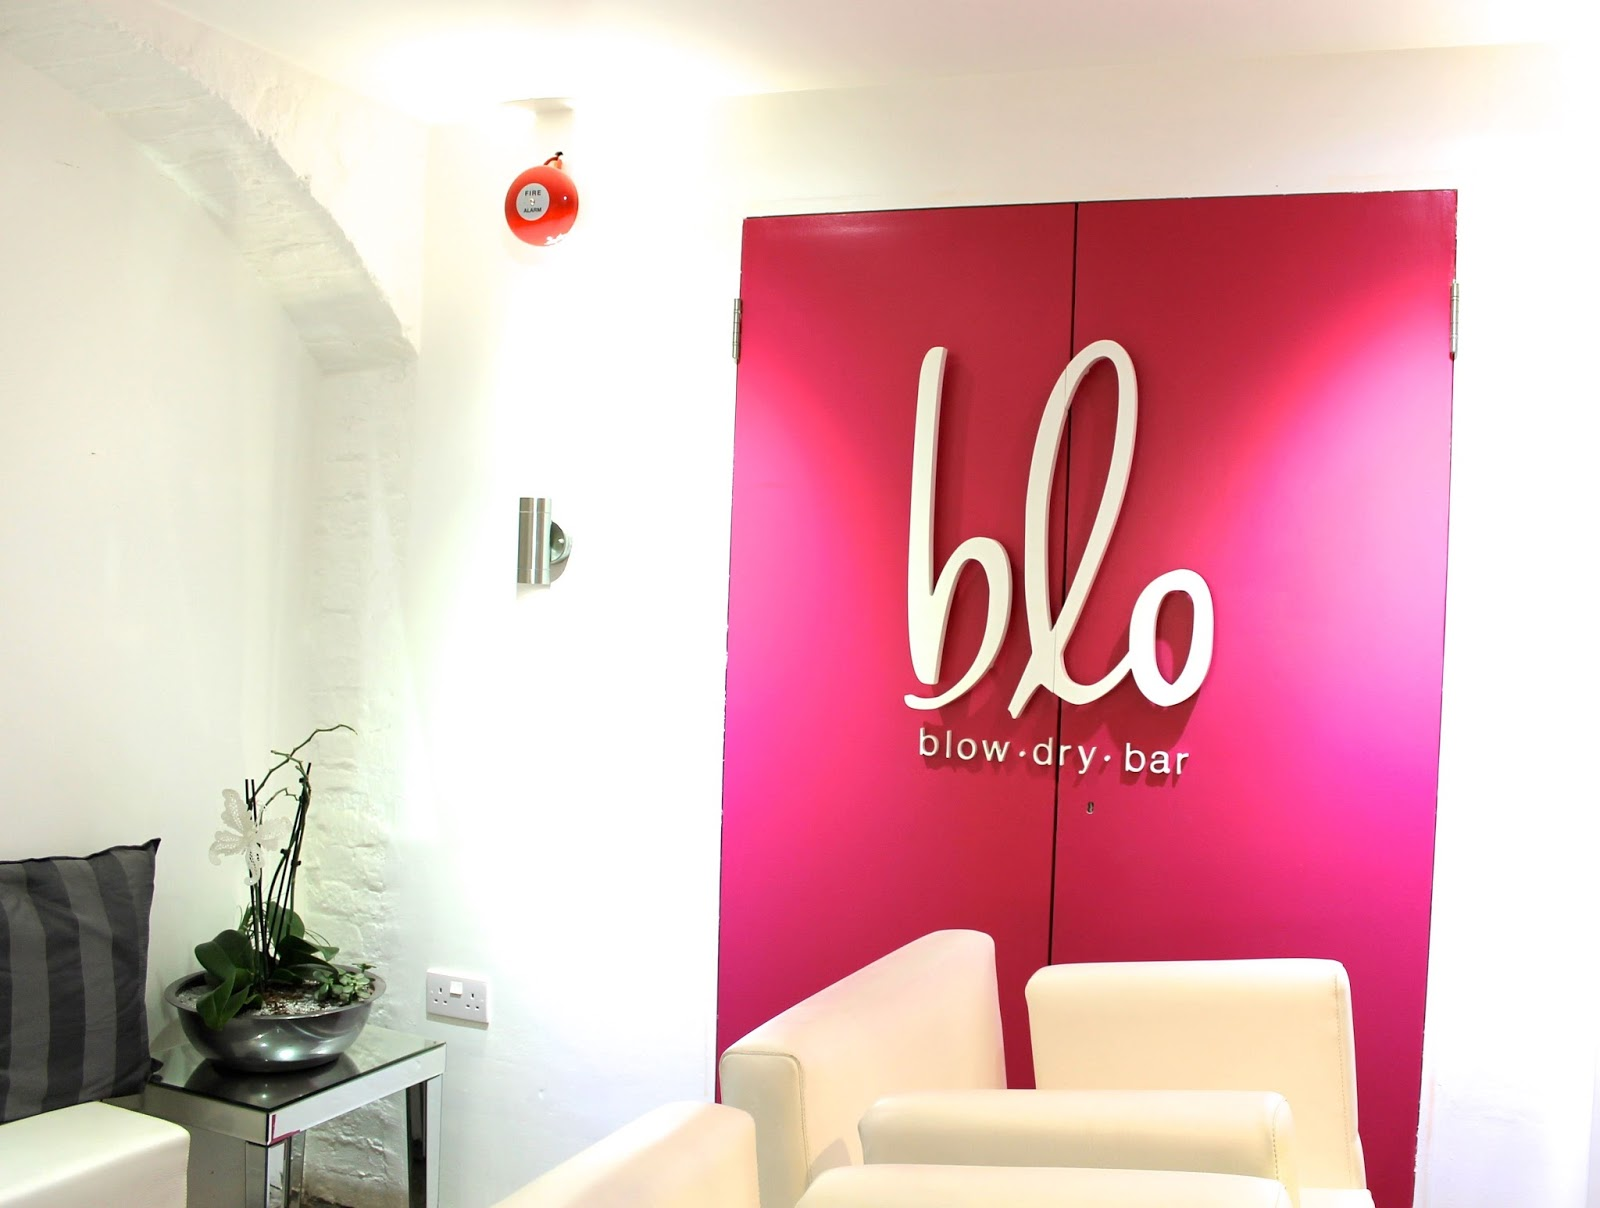 Blo Blow Dry Bar London Bec Boop